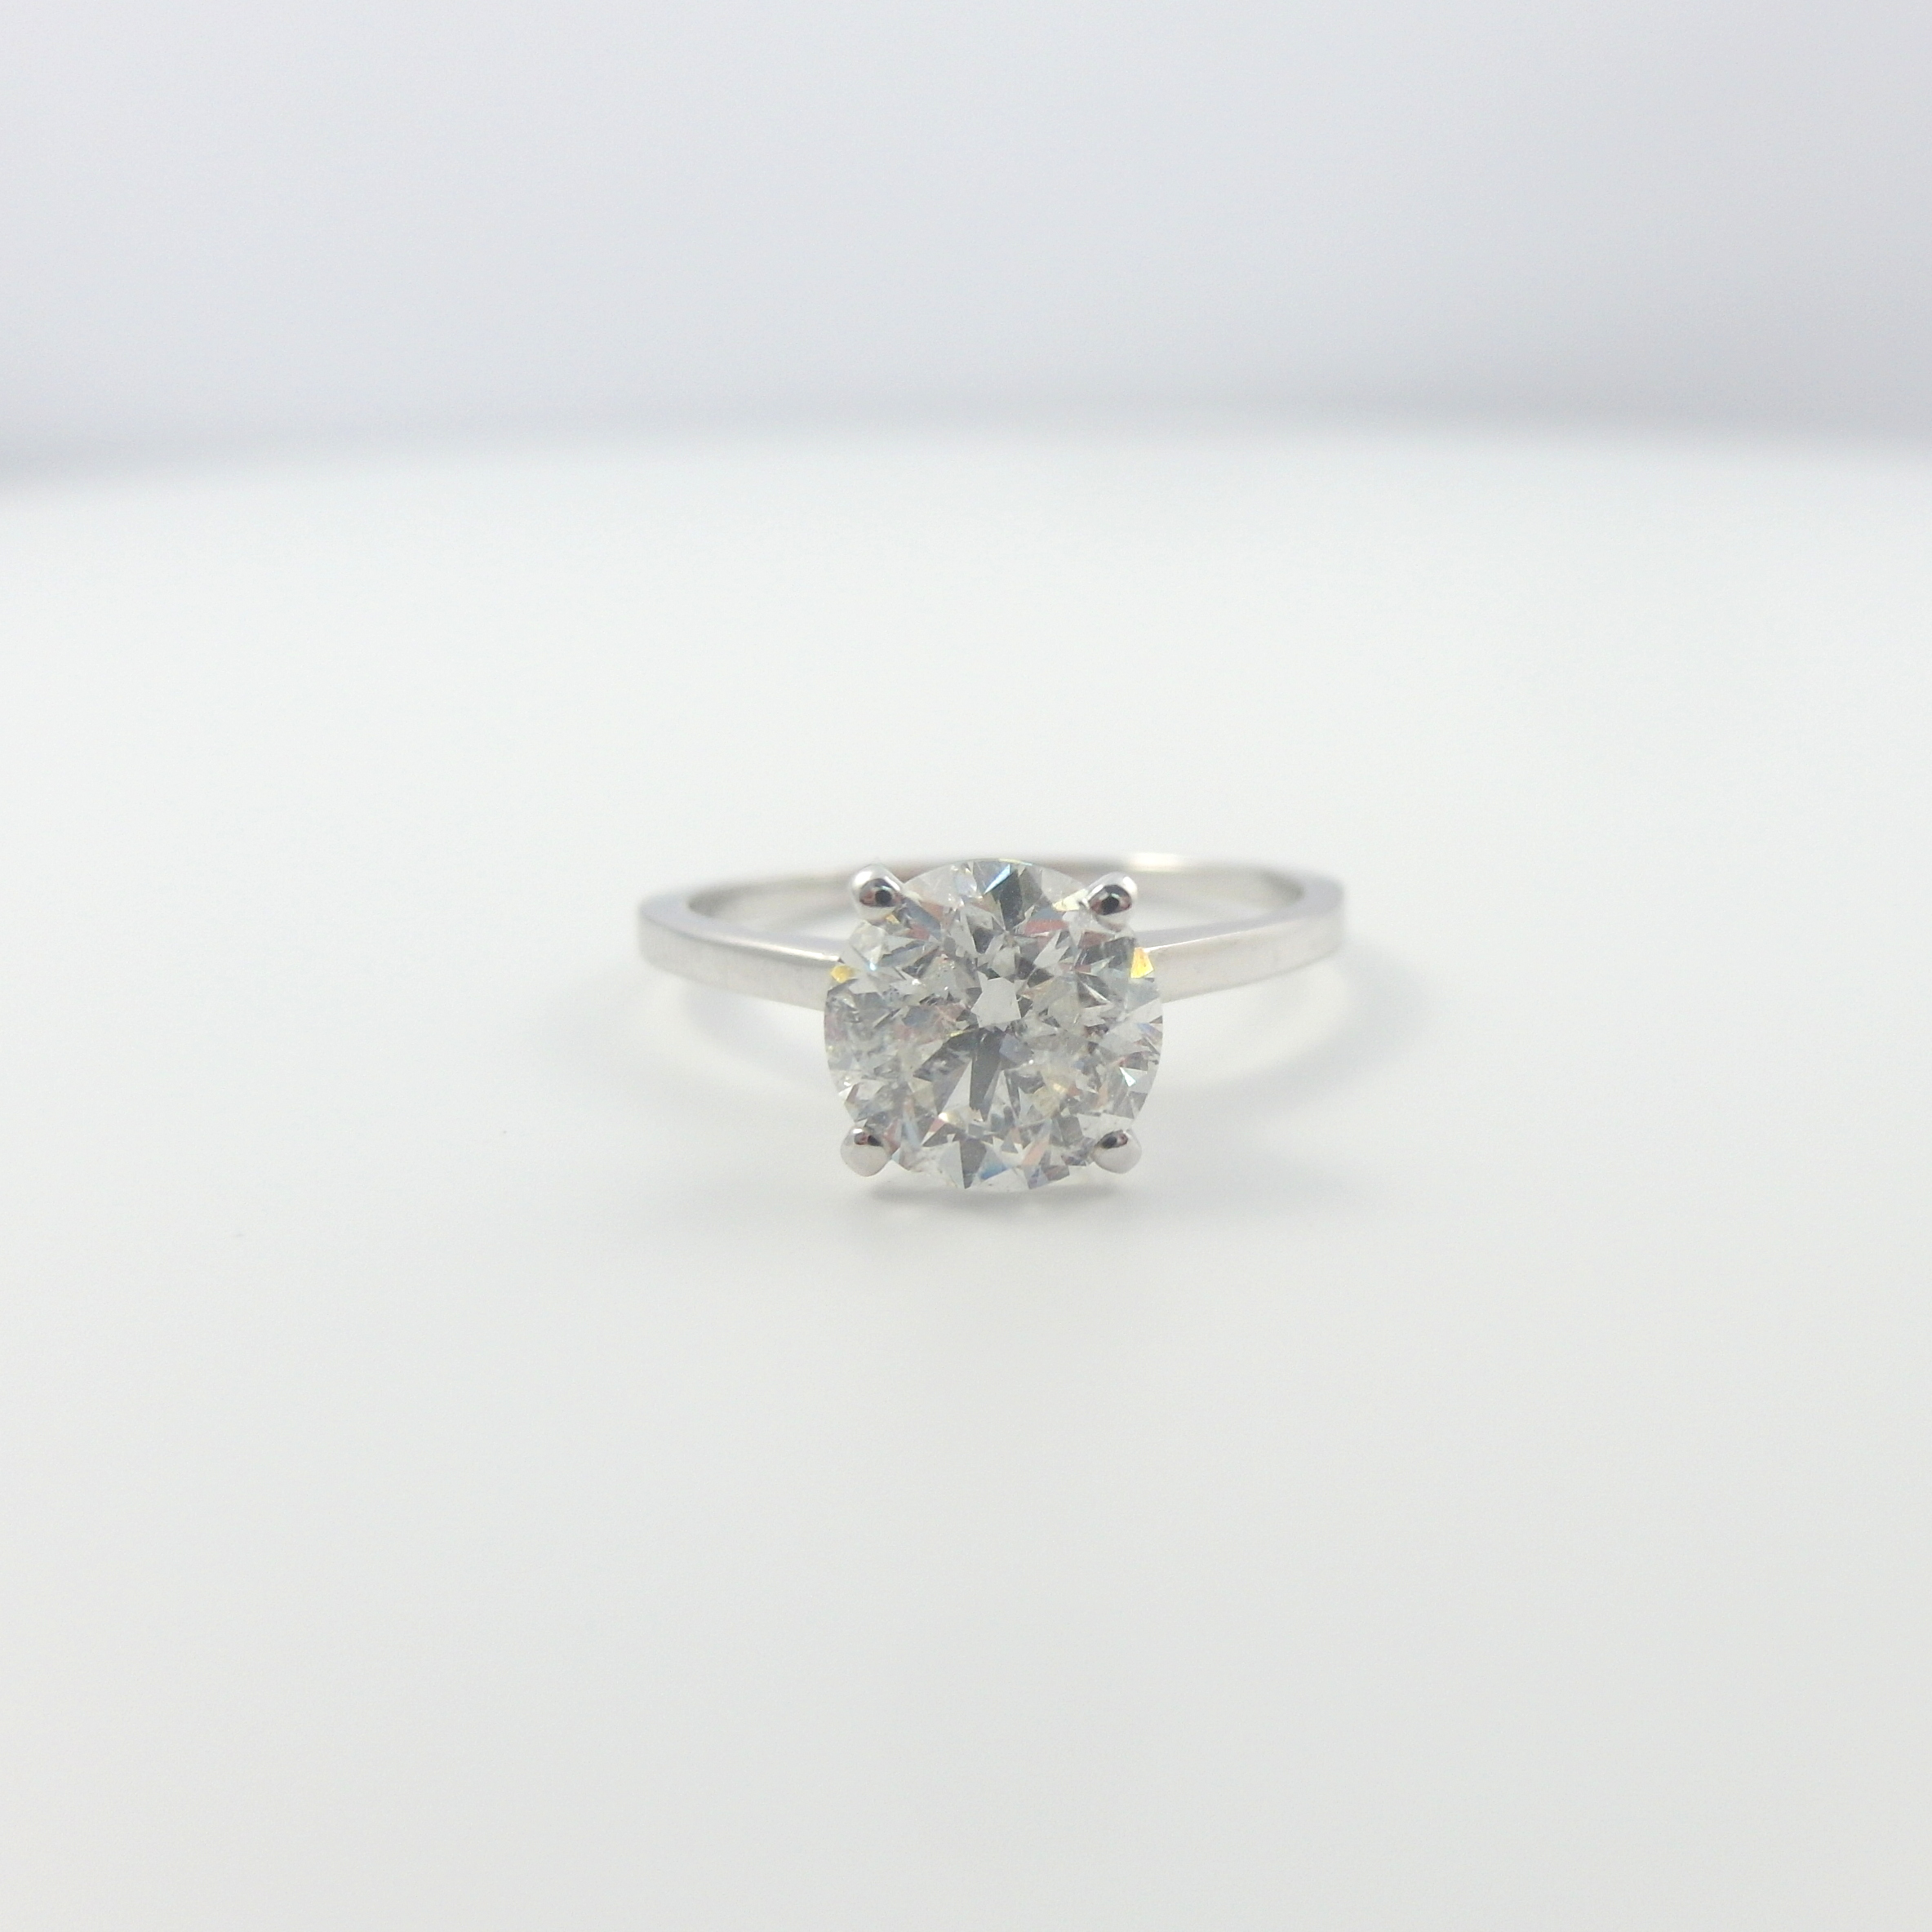 DIAMOND RING CERTIFIED 3 1 2 CARAT ESTATE 14 KARAT WHITE GOLD SIZE 5 5 6 5 7